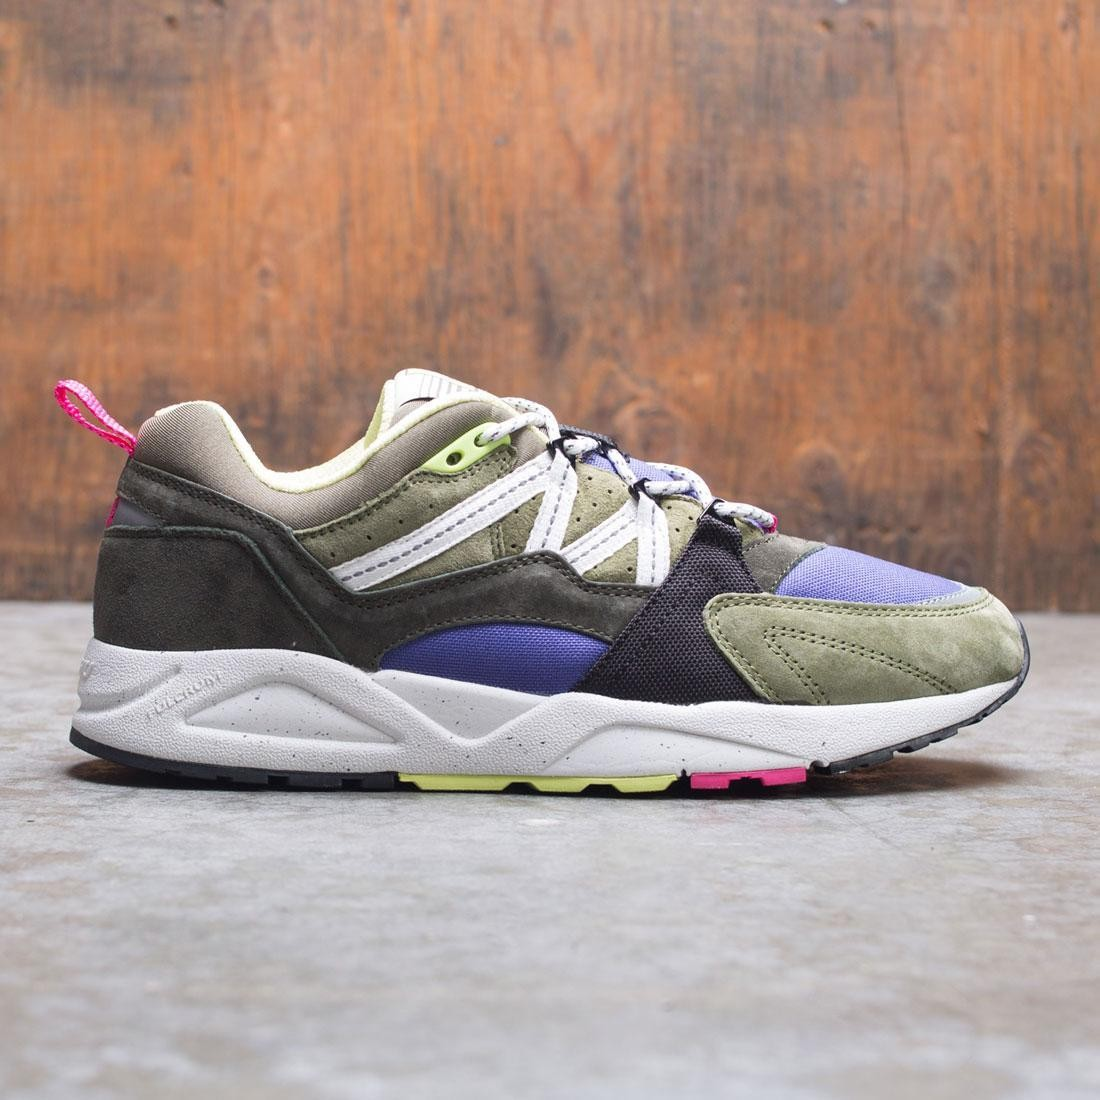 Karhu Men Fusion 2.0 (olive / forest night / bright white)